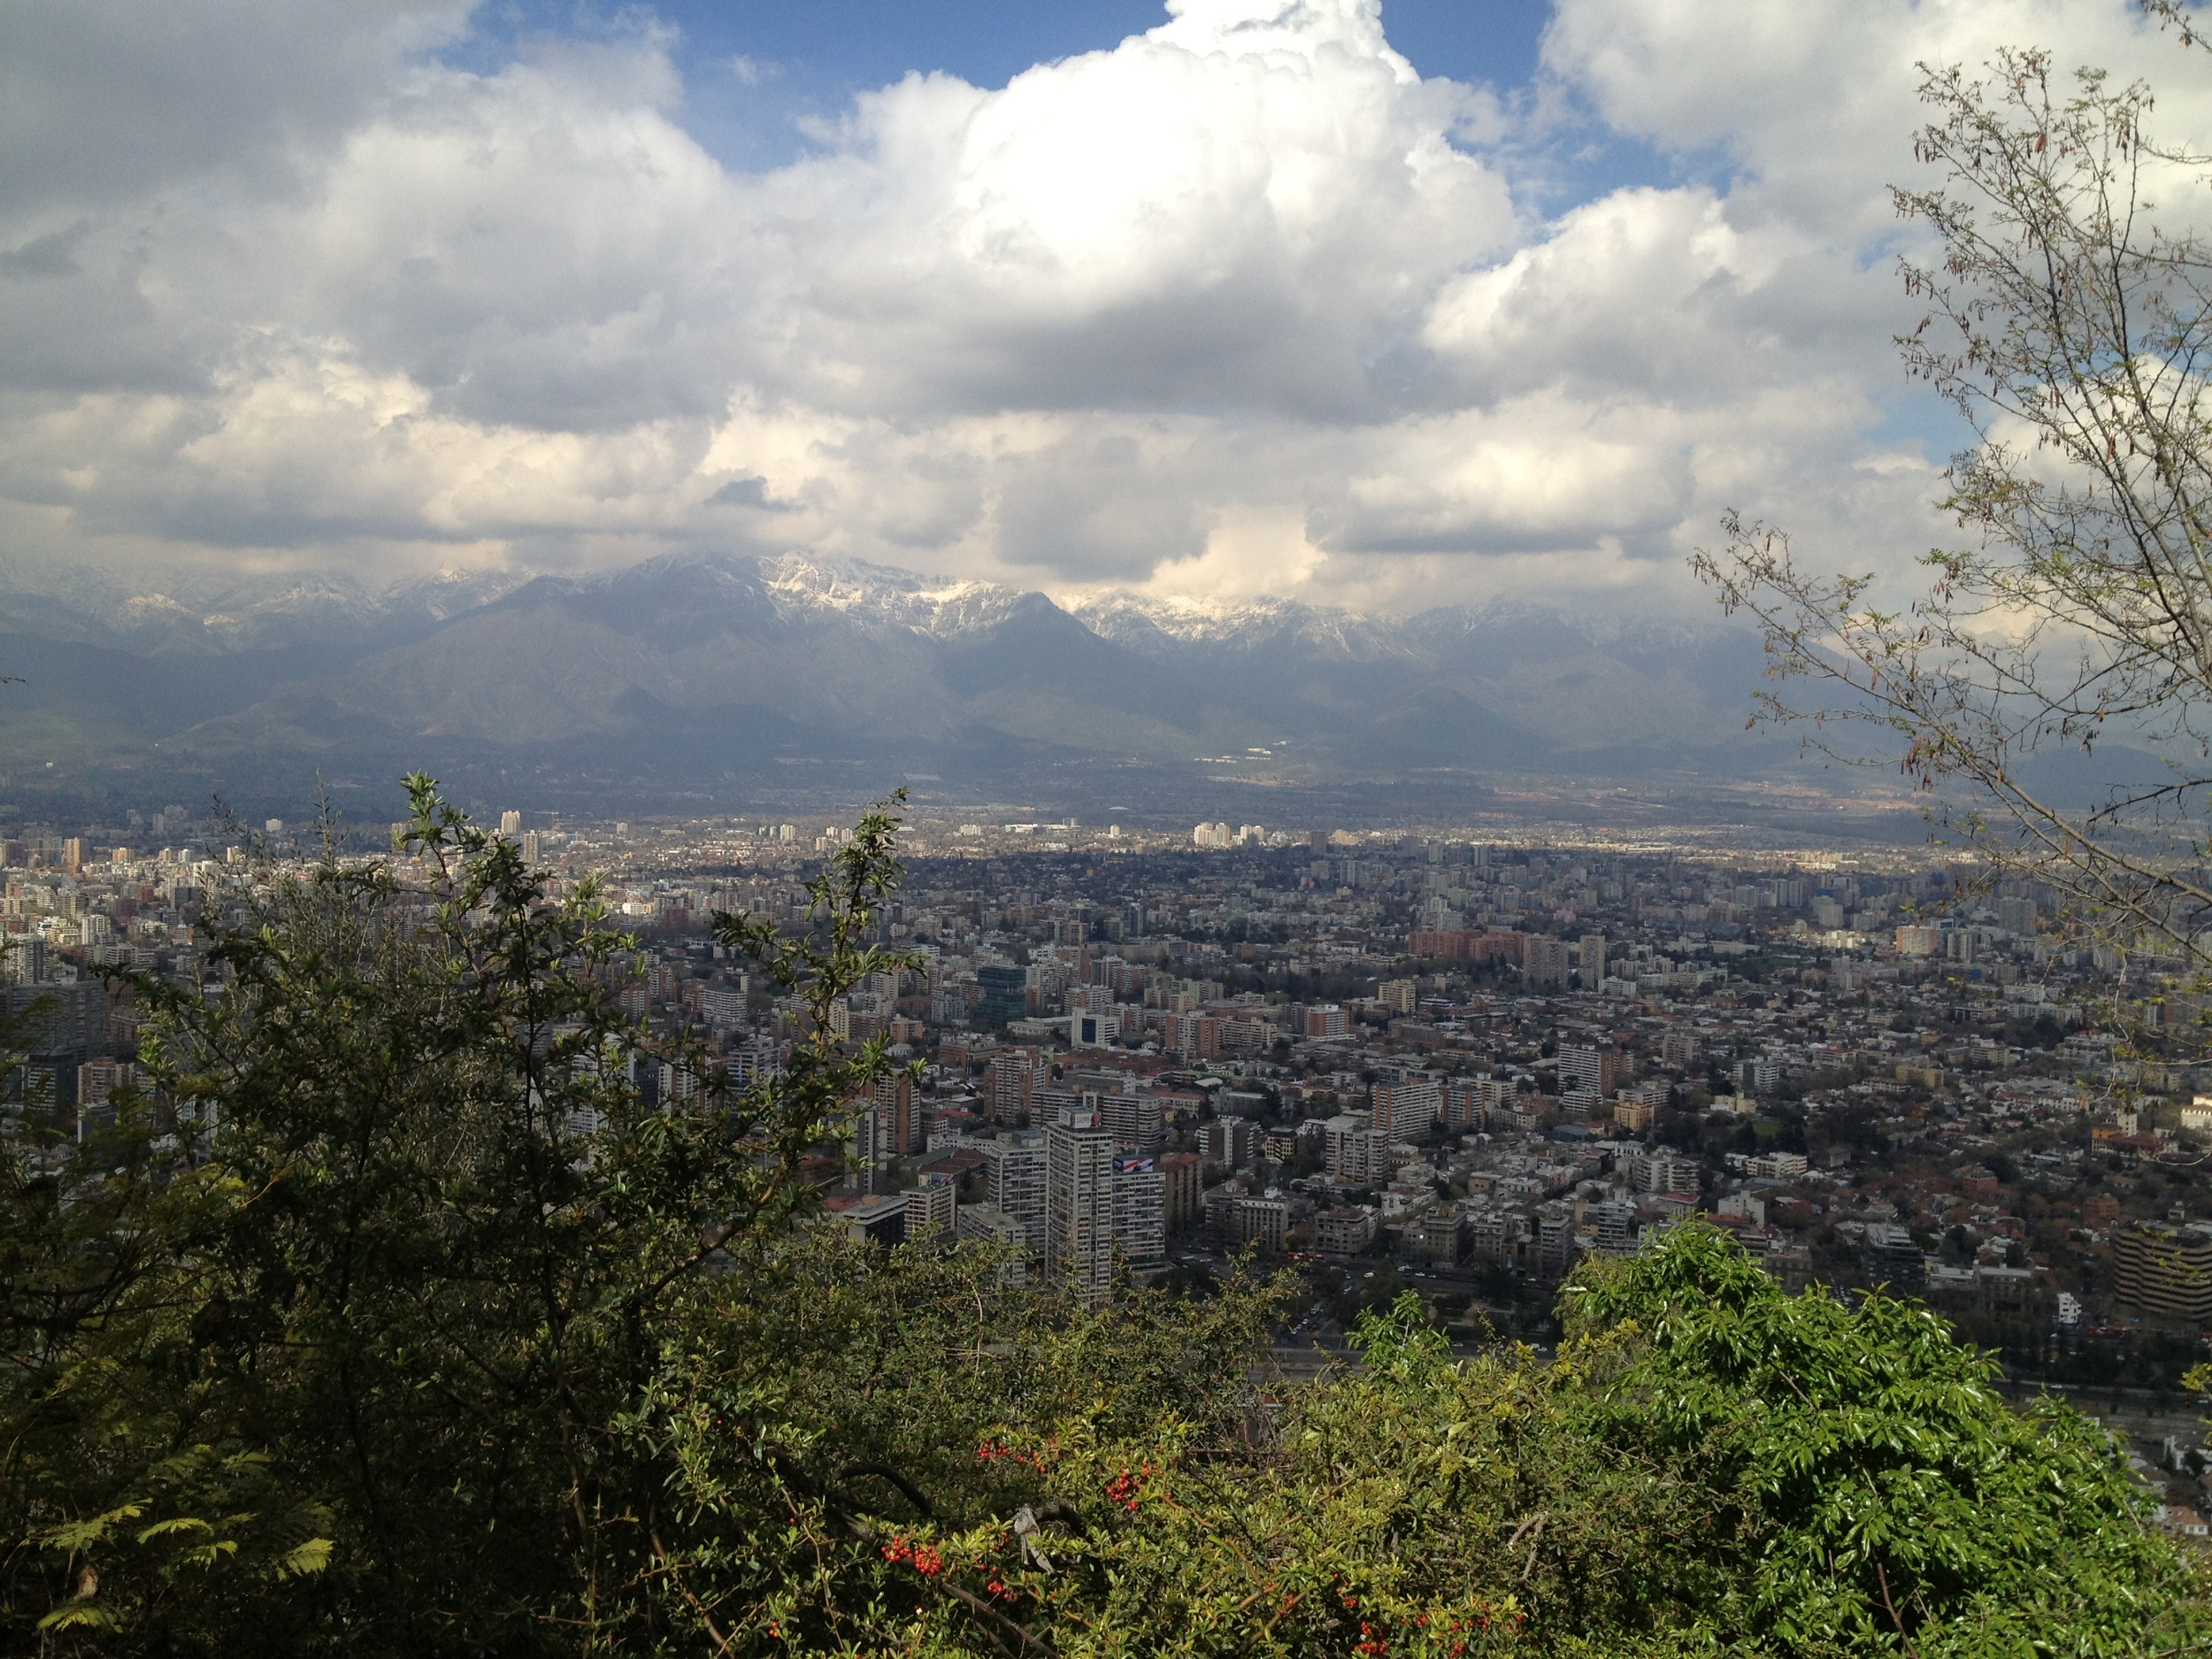 The Andes in the distance - the view from San Cristobal Hill.